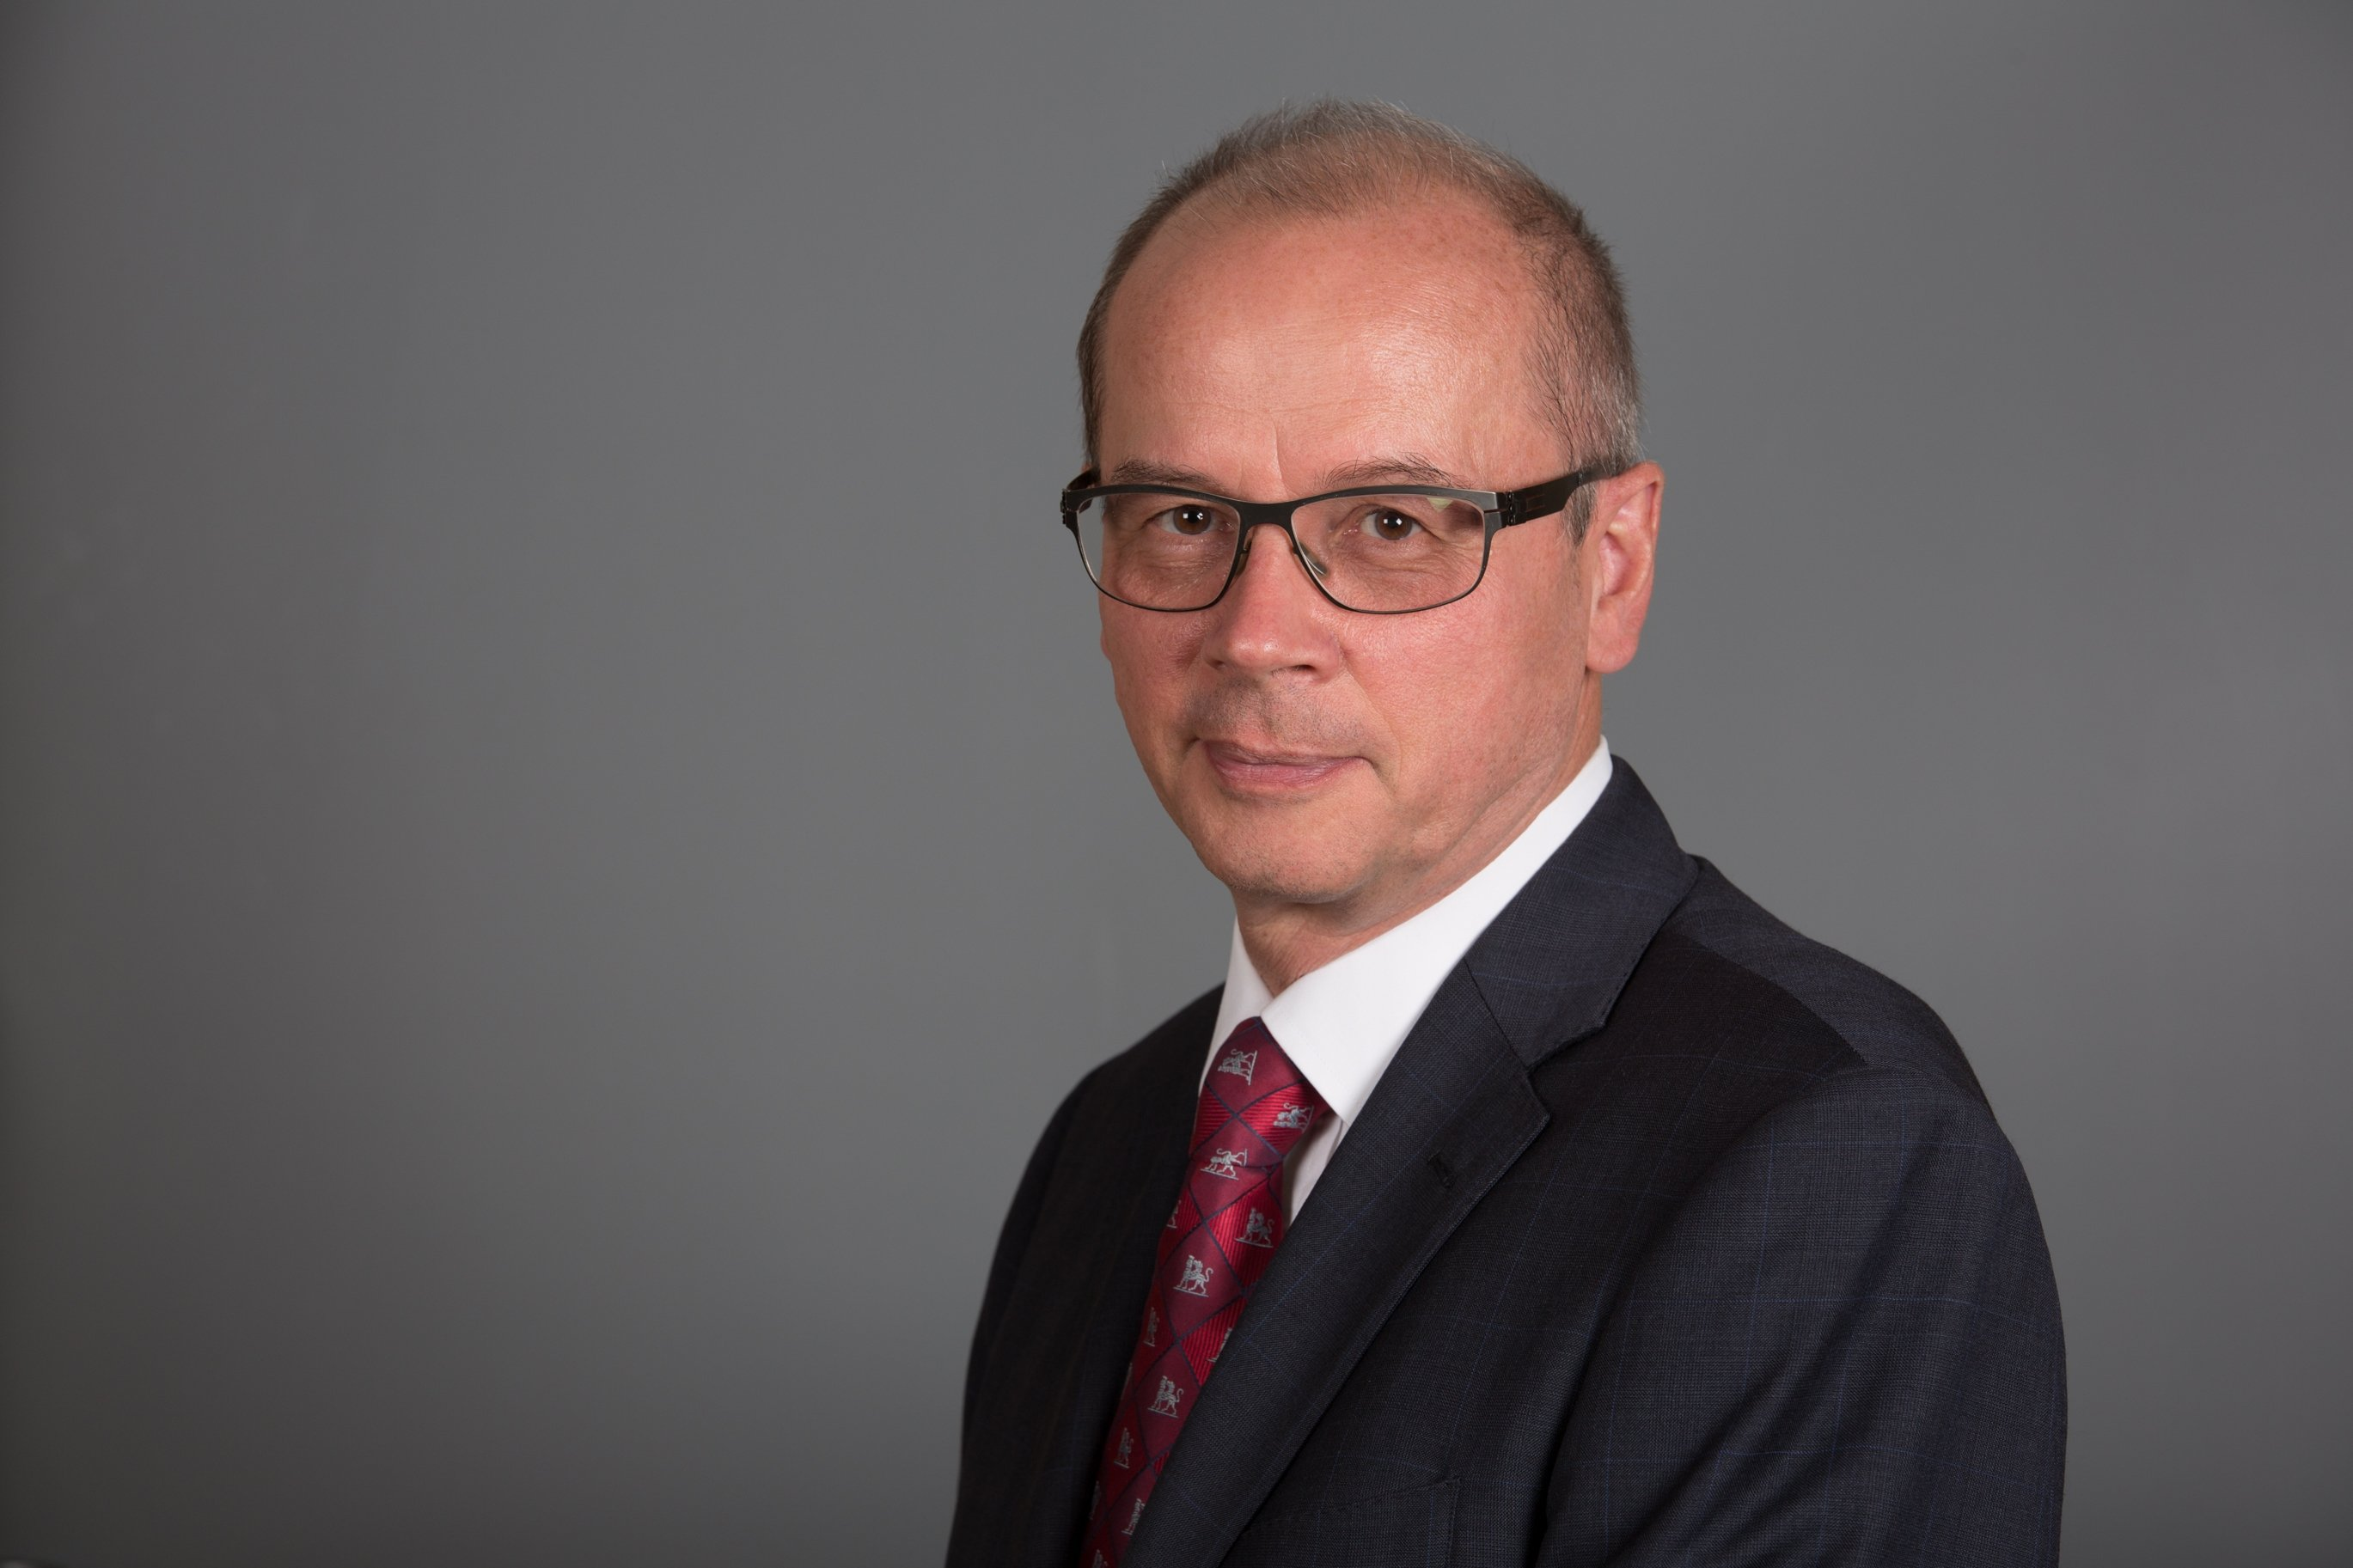 Austrian Trade Commissioner for Turkey Georg Karabaczek seen in this photo provided on Feb. 23, 2021. (Courtesy of Austrian Consulate Trade Office via AA)